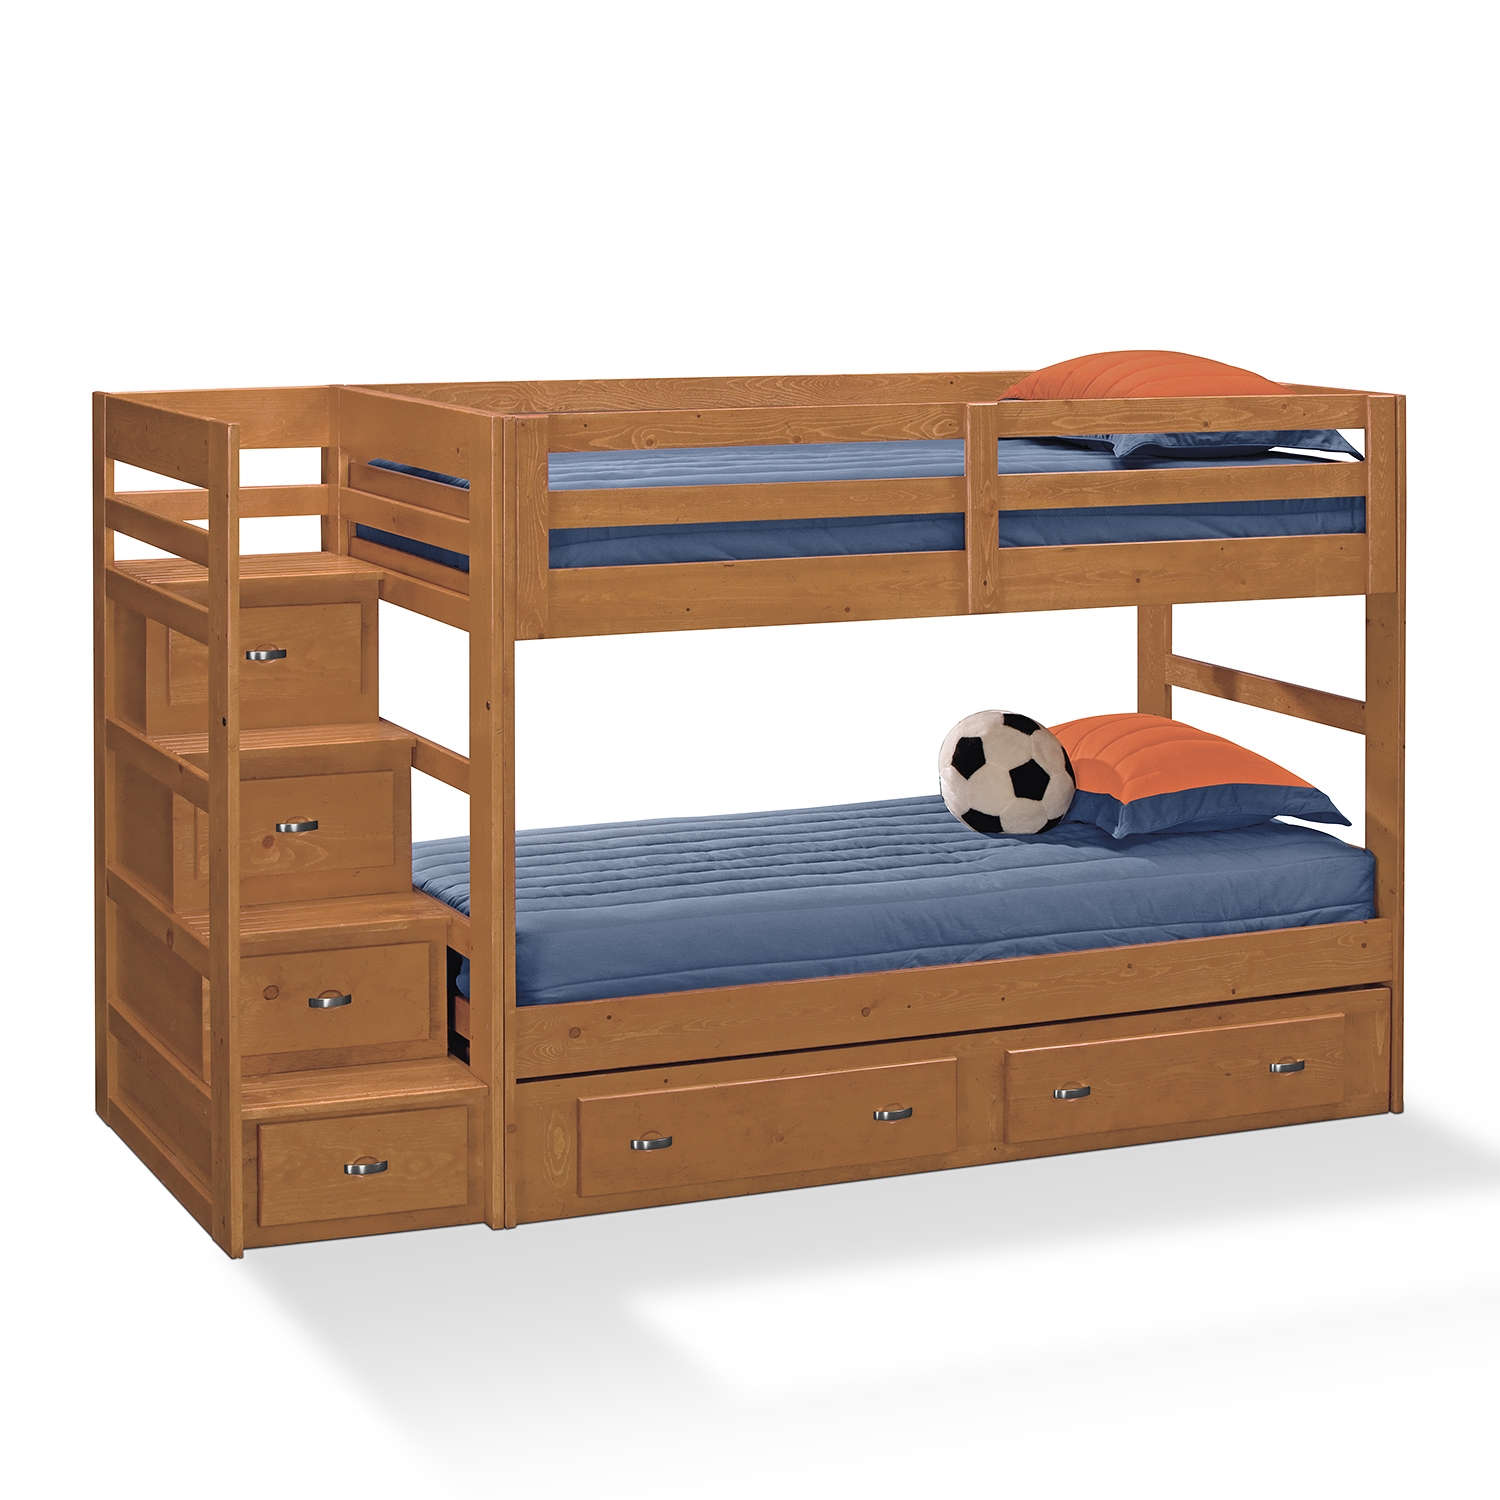 cool wood Bunk Beds With Stairs and drawers plus blue bedding for boy bedroom decor ideas